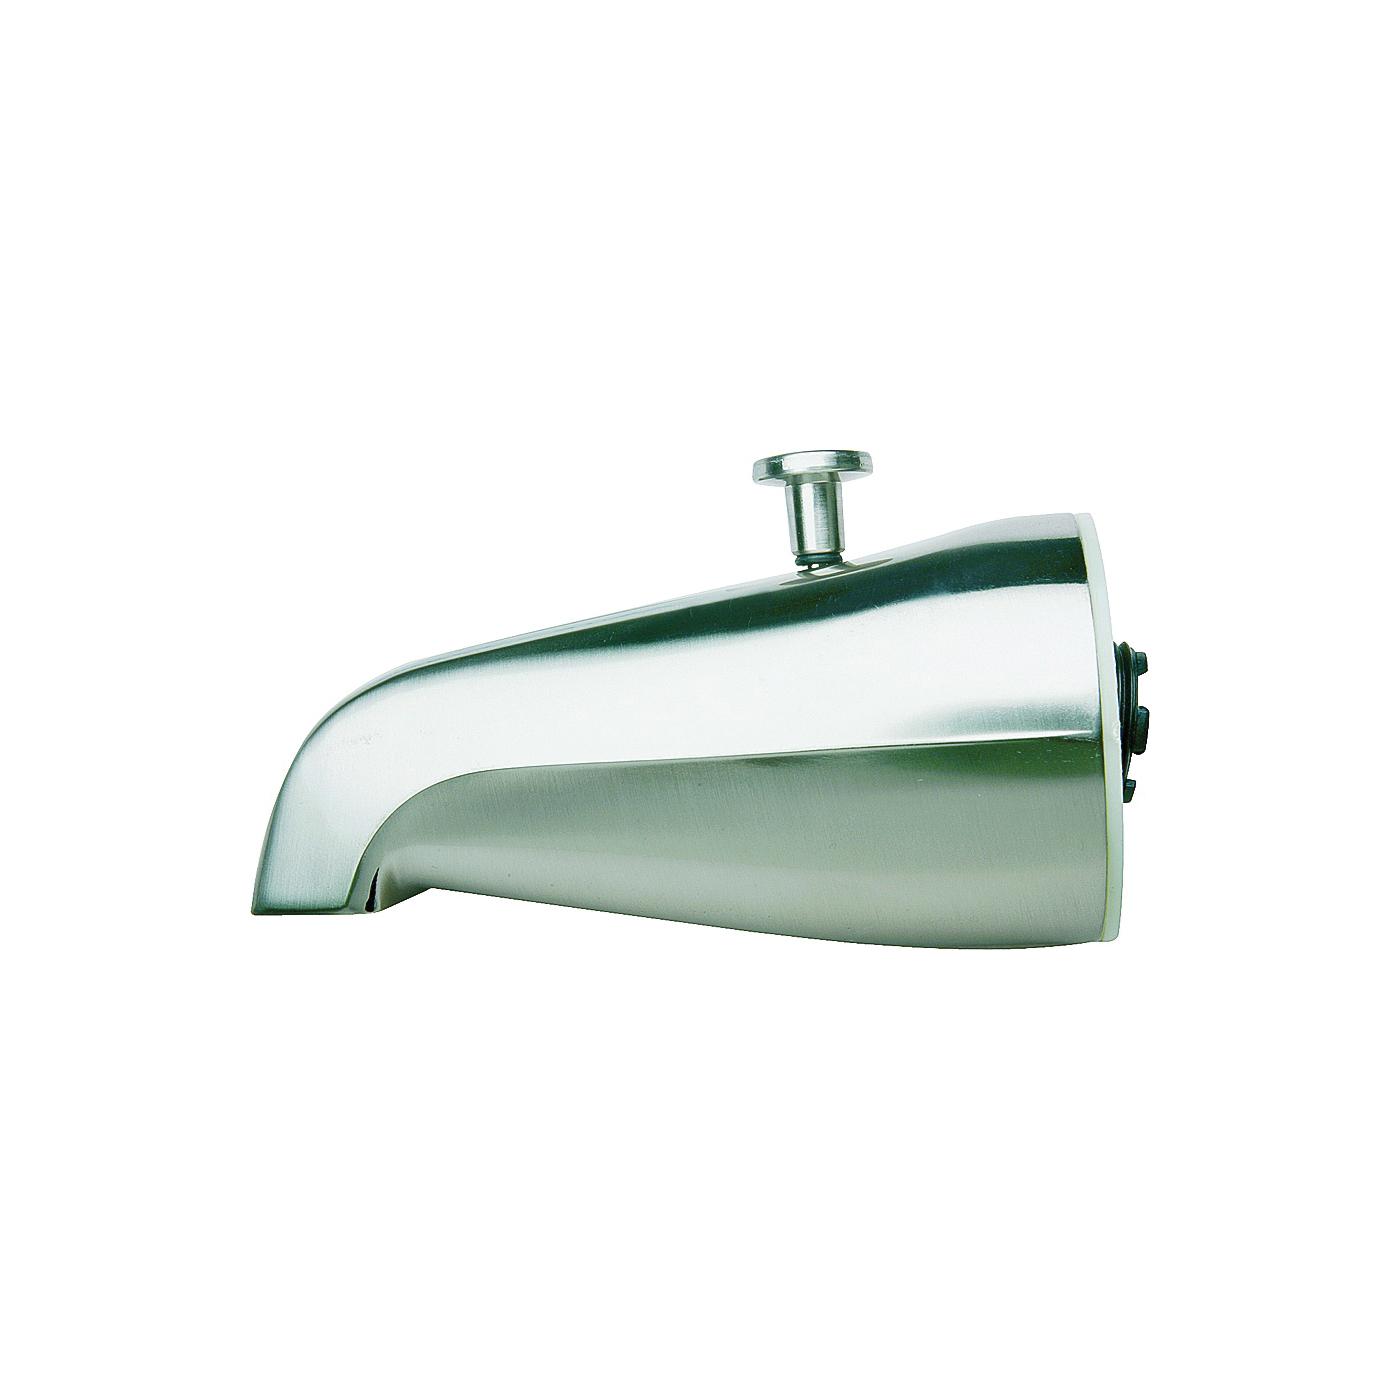 Picture of Plumb Pak PP825-31 Bathtub Spout, 3/4 in Connection, IPS, Chrome, For: 1/2 in or 3/4 in Pipe